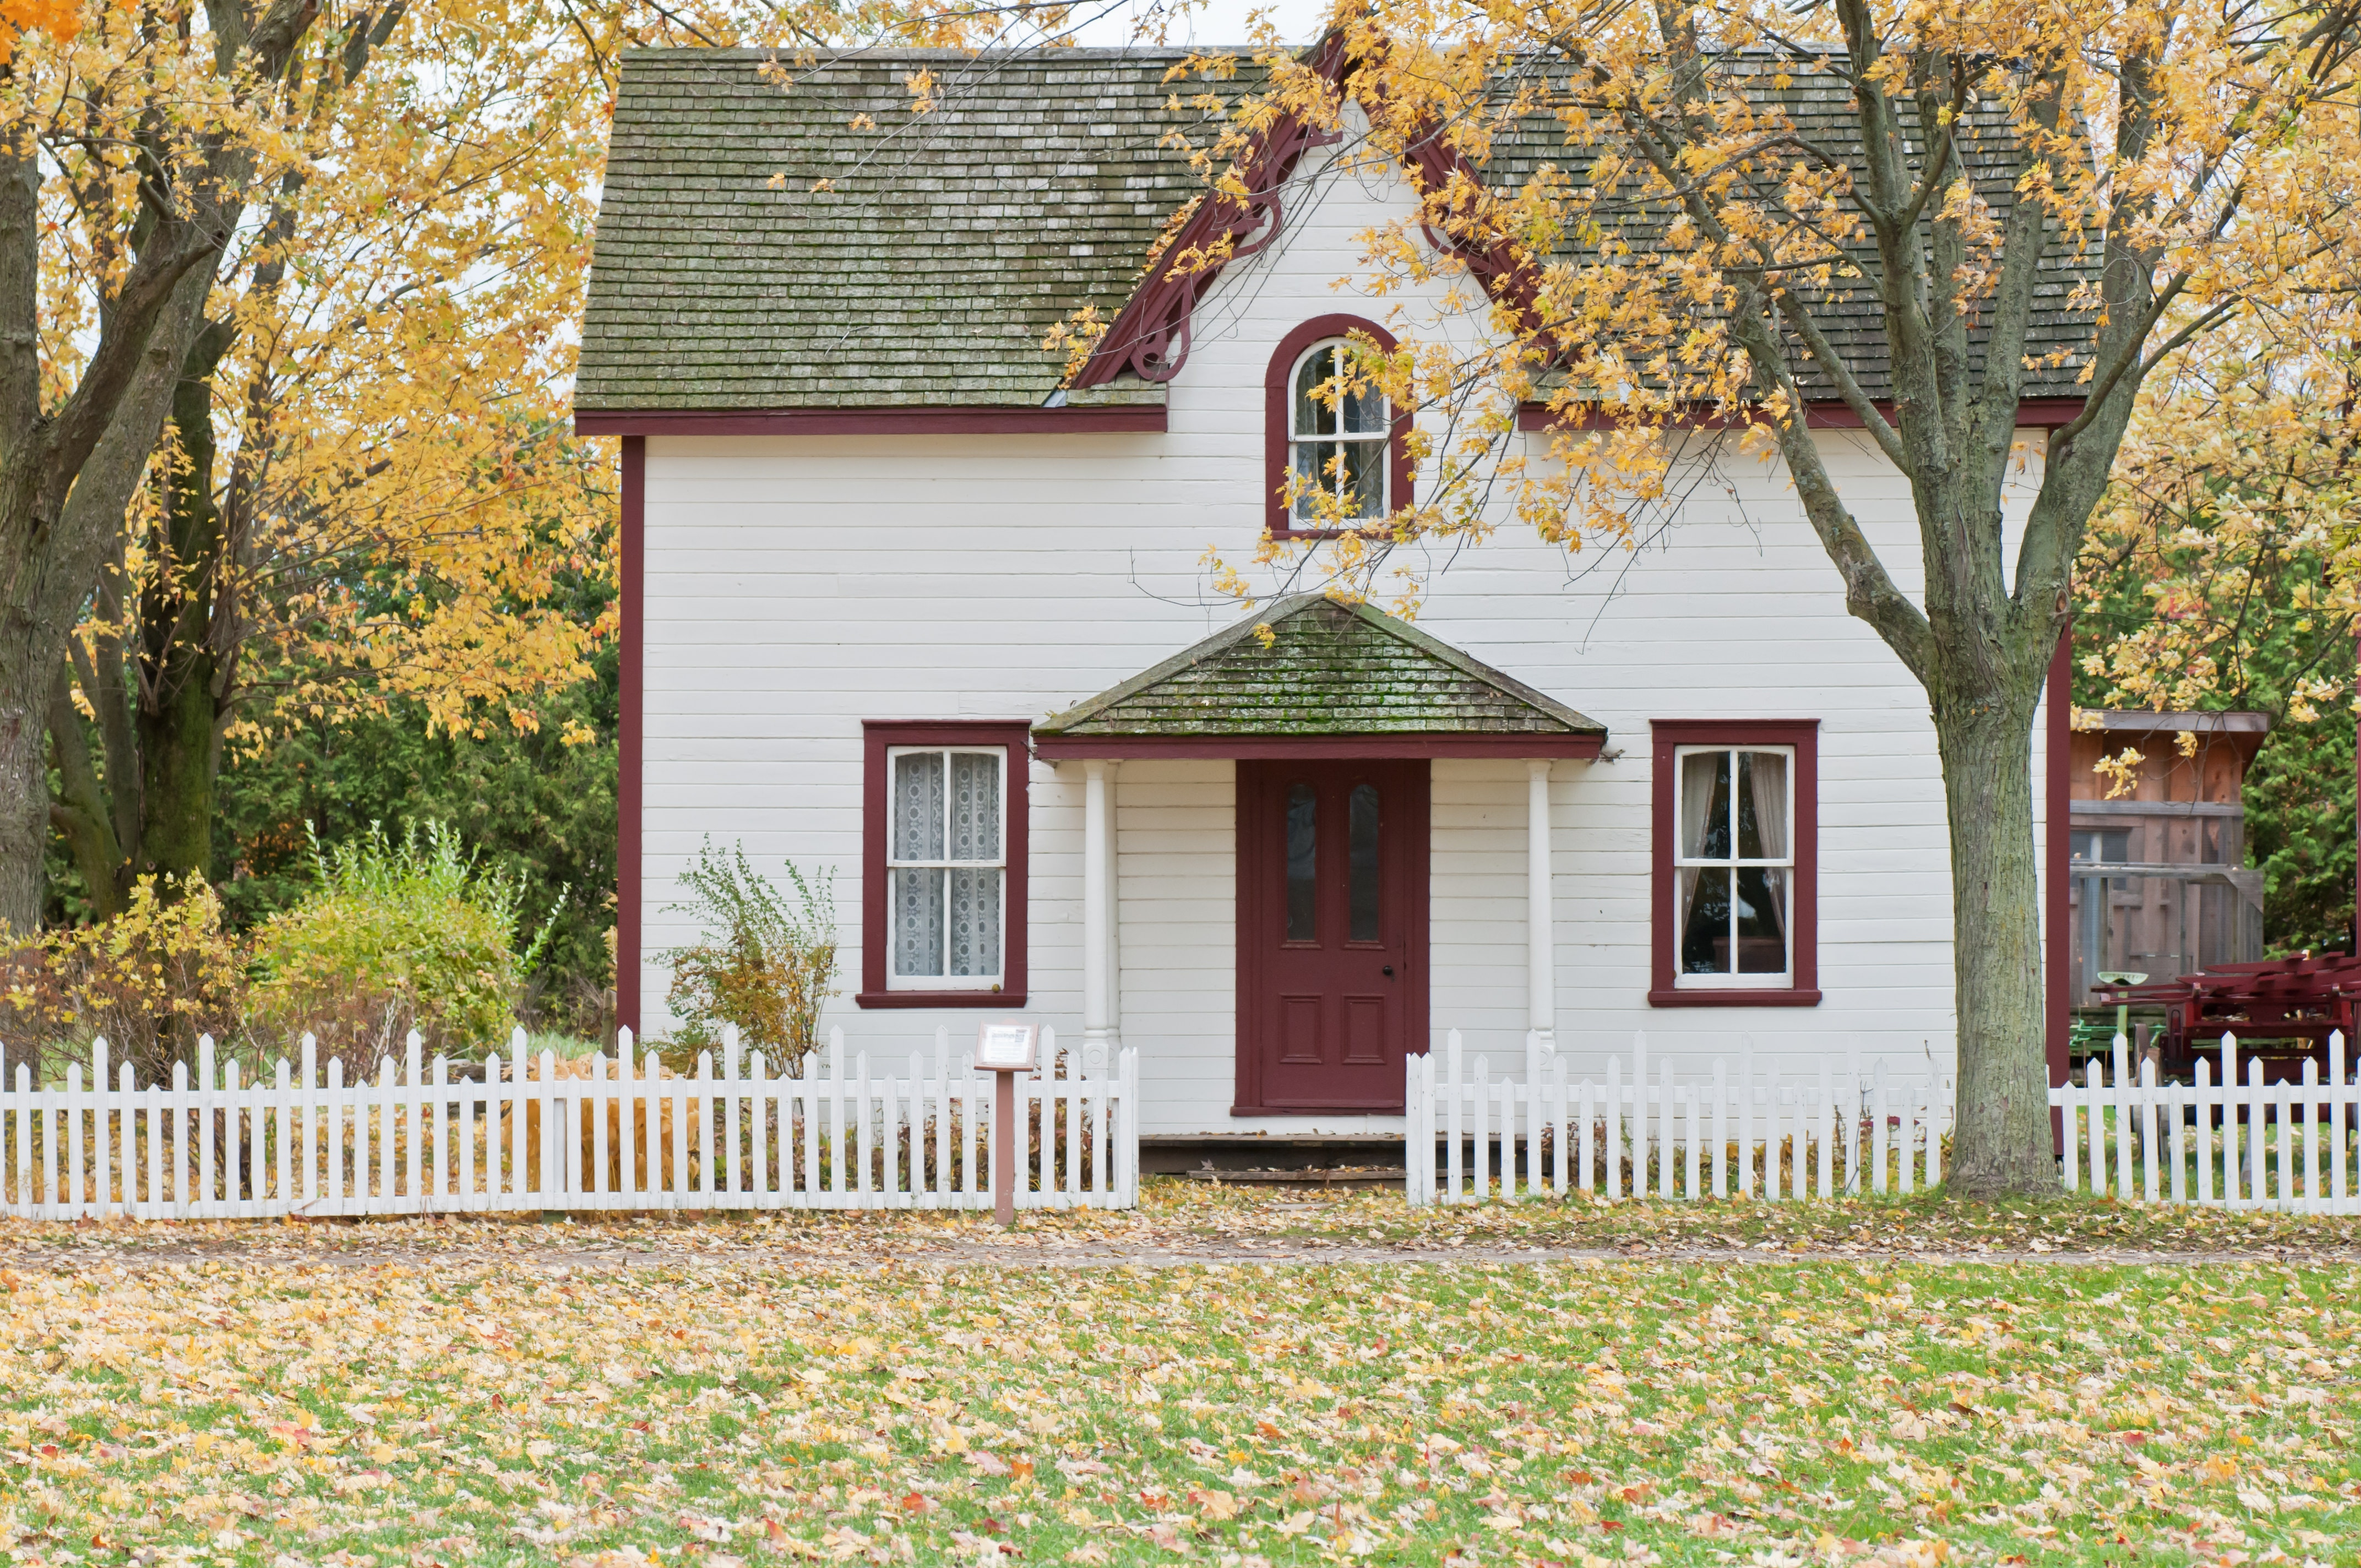 Repairing summer damage and preparing for winter are best done in the fall, so now is the time to prepare.